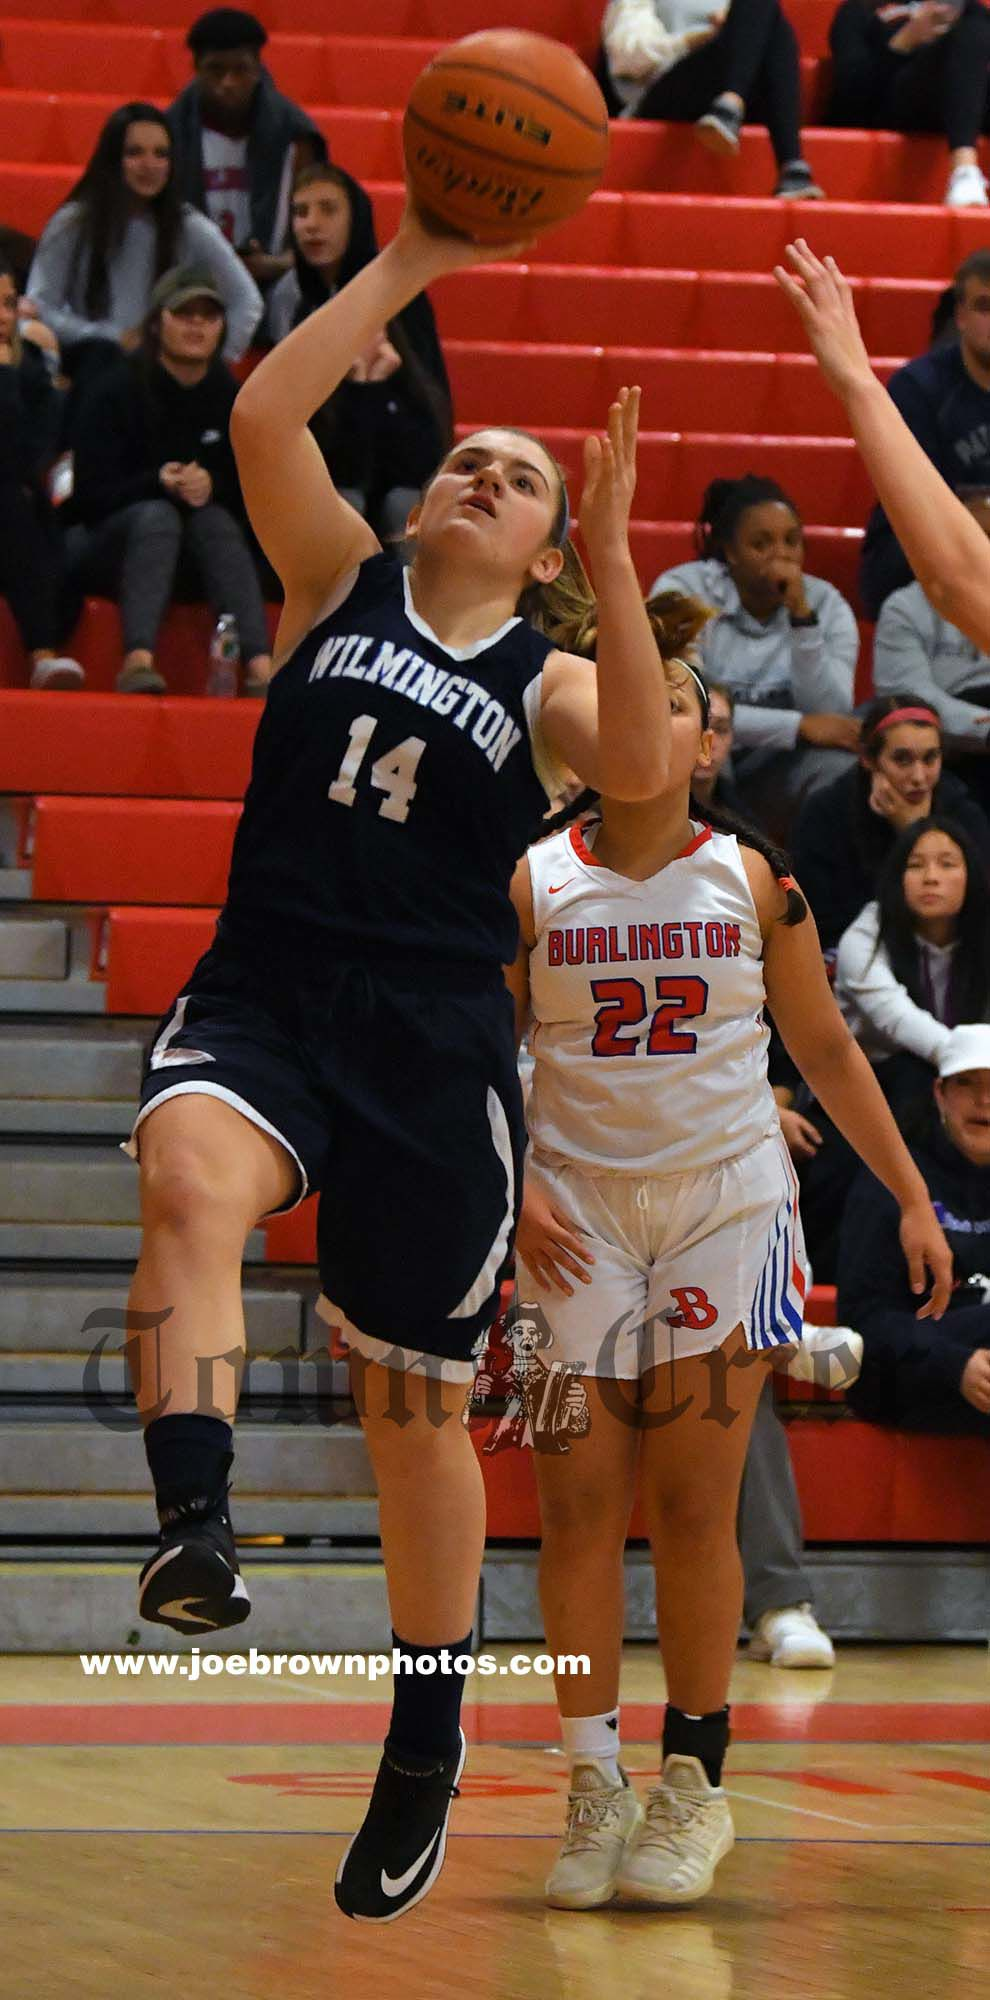 Wilmington High junior Jenna Sweeney makes a lay-up